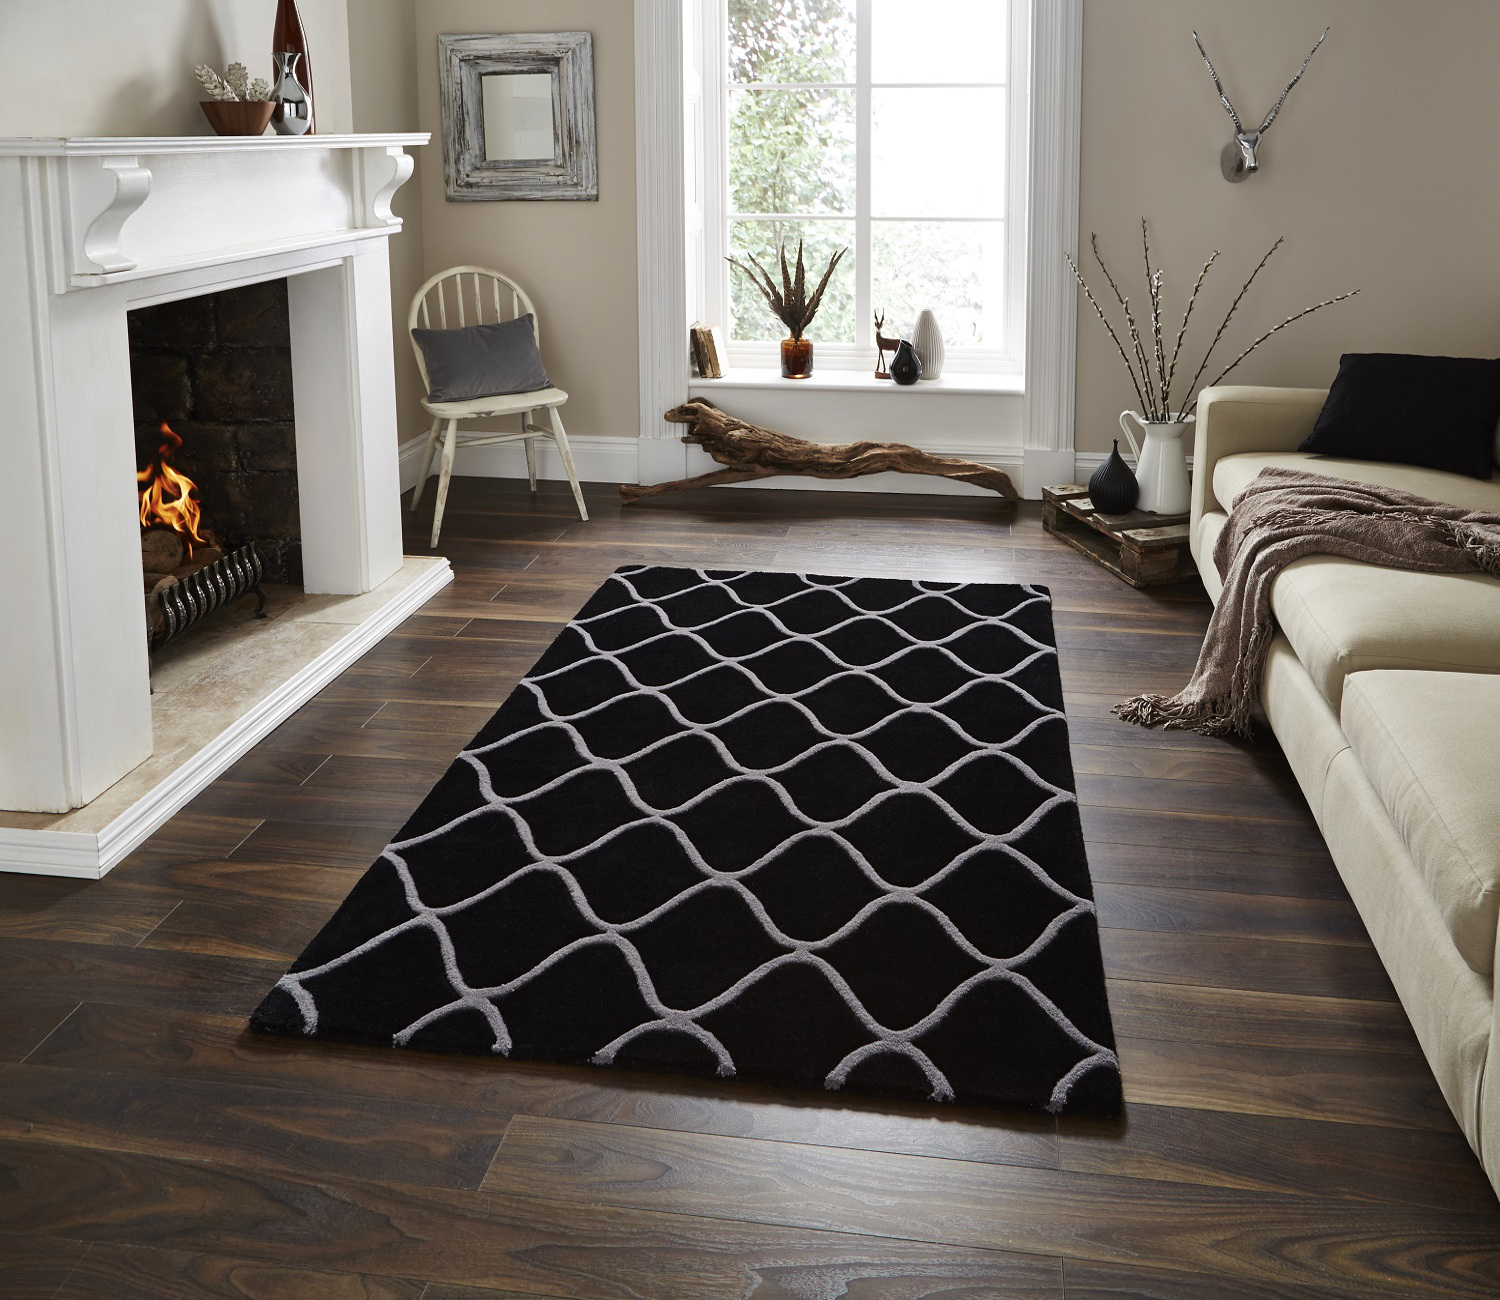 Black And White Rug Ebay Uk: Wave Design Hand Tufted 100% Wool Rug Contemporary Home